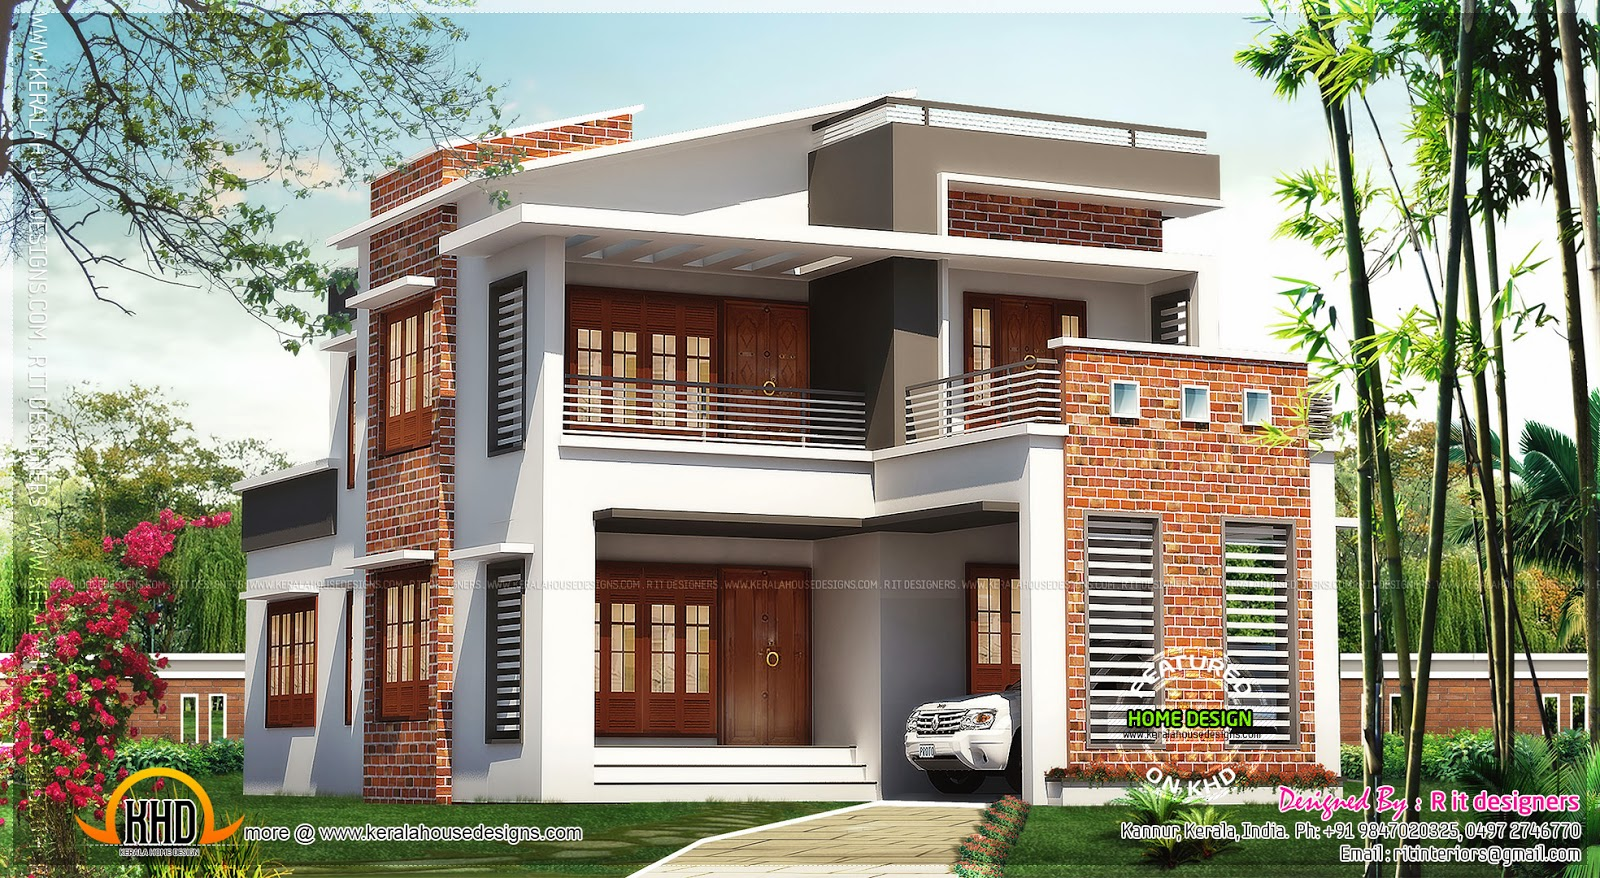 Brick mix house exterior design kerala home design and for Brick house designs